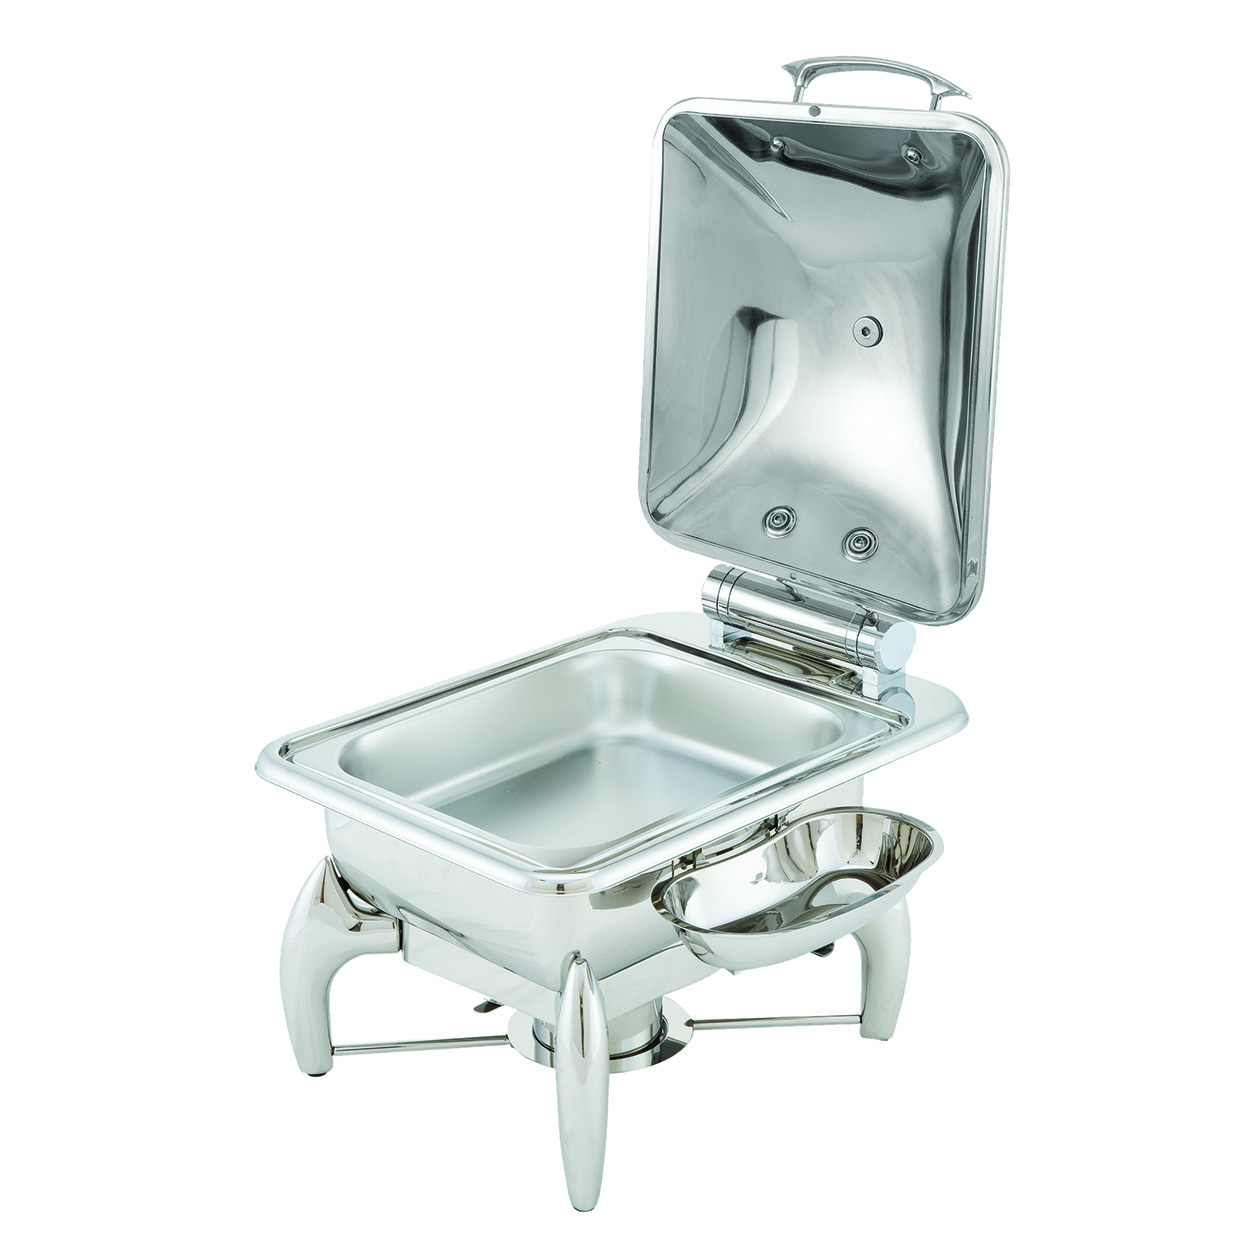 Walco Stainless WI35LML chafing dish